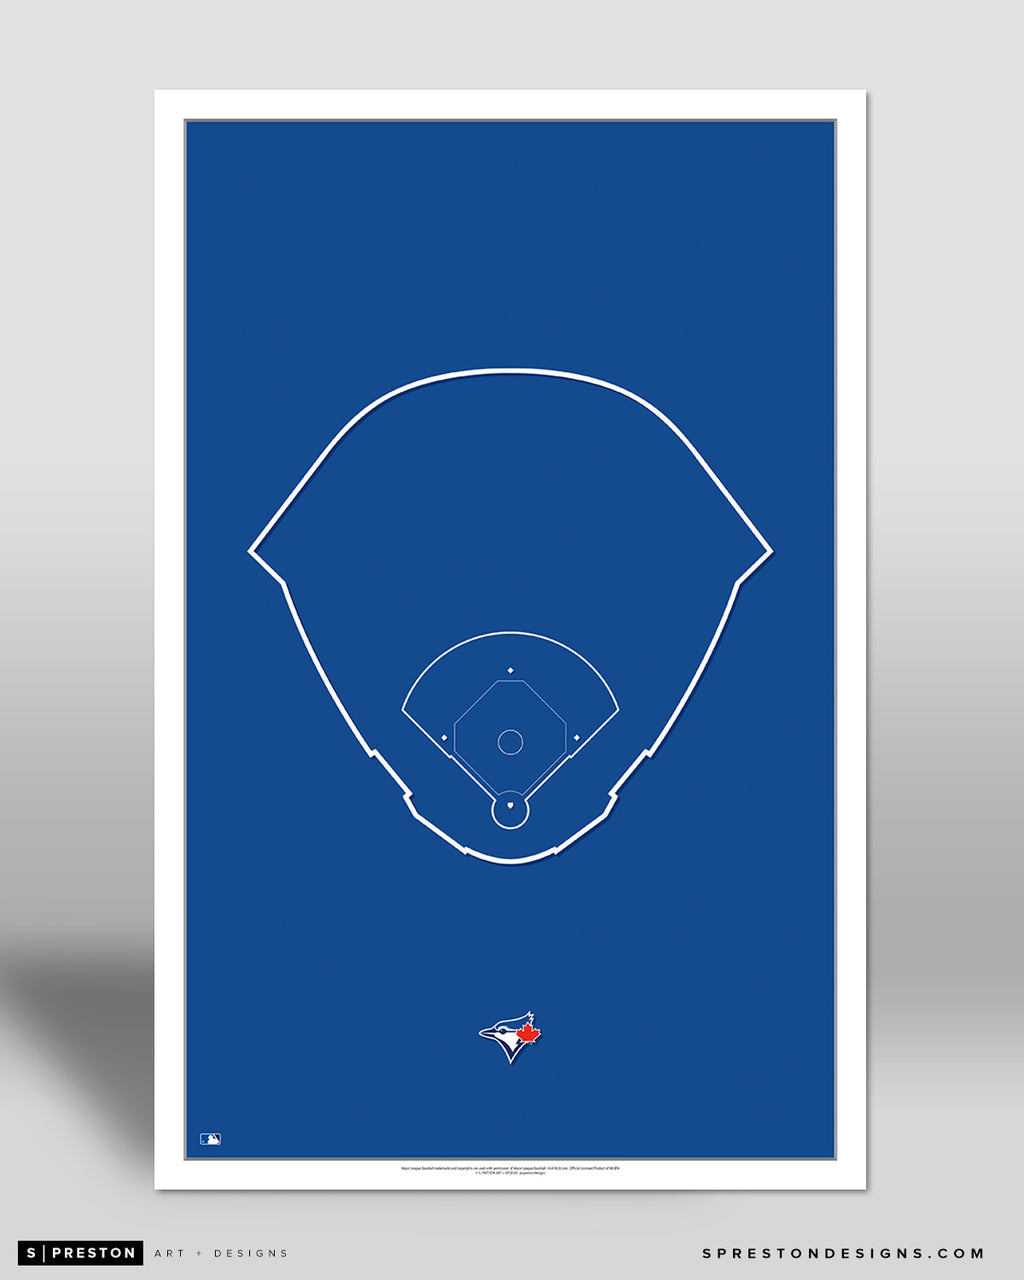 MLB Outline Ballpark - Rogers Centre Toronto Blue Jays - S Preston